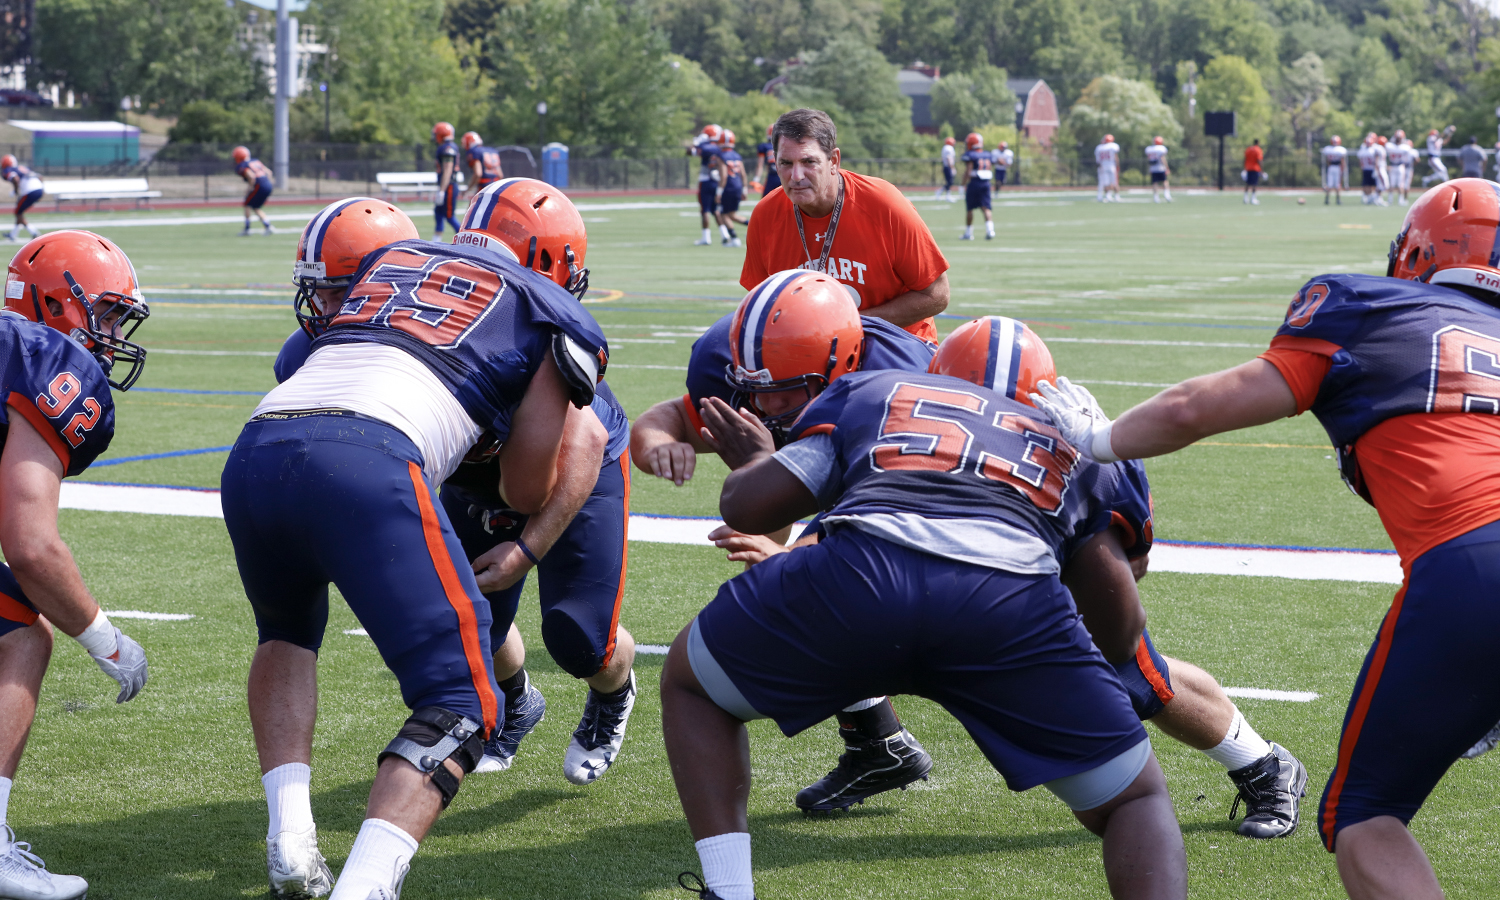 Coach Cragg works with players as practice begins for the Statesmen Football season. Cragg began with Hobart as an assistant coach in 1986, and became head coach in 1995.